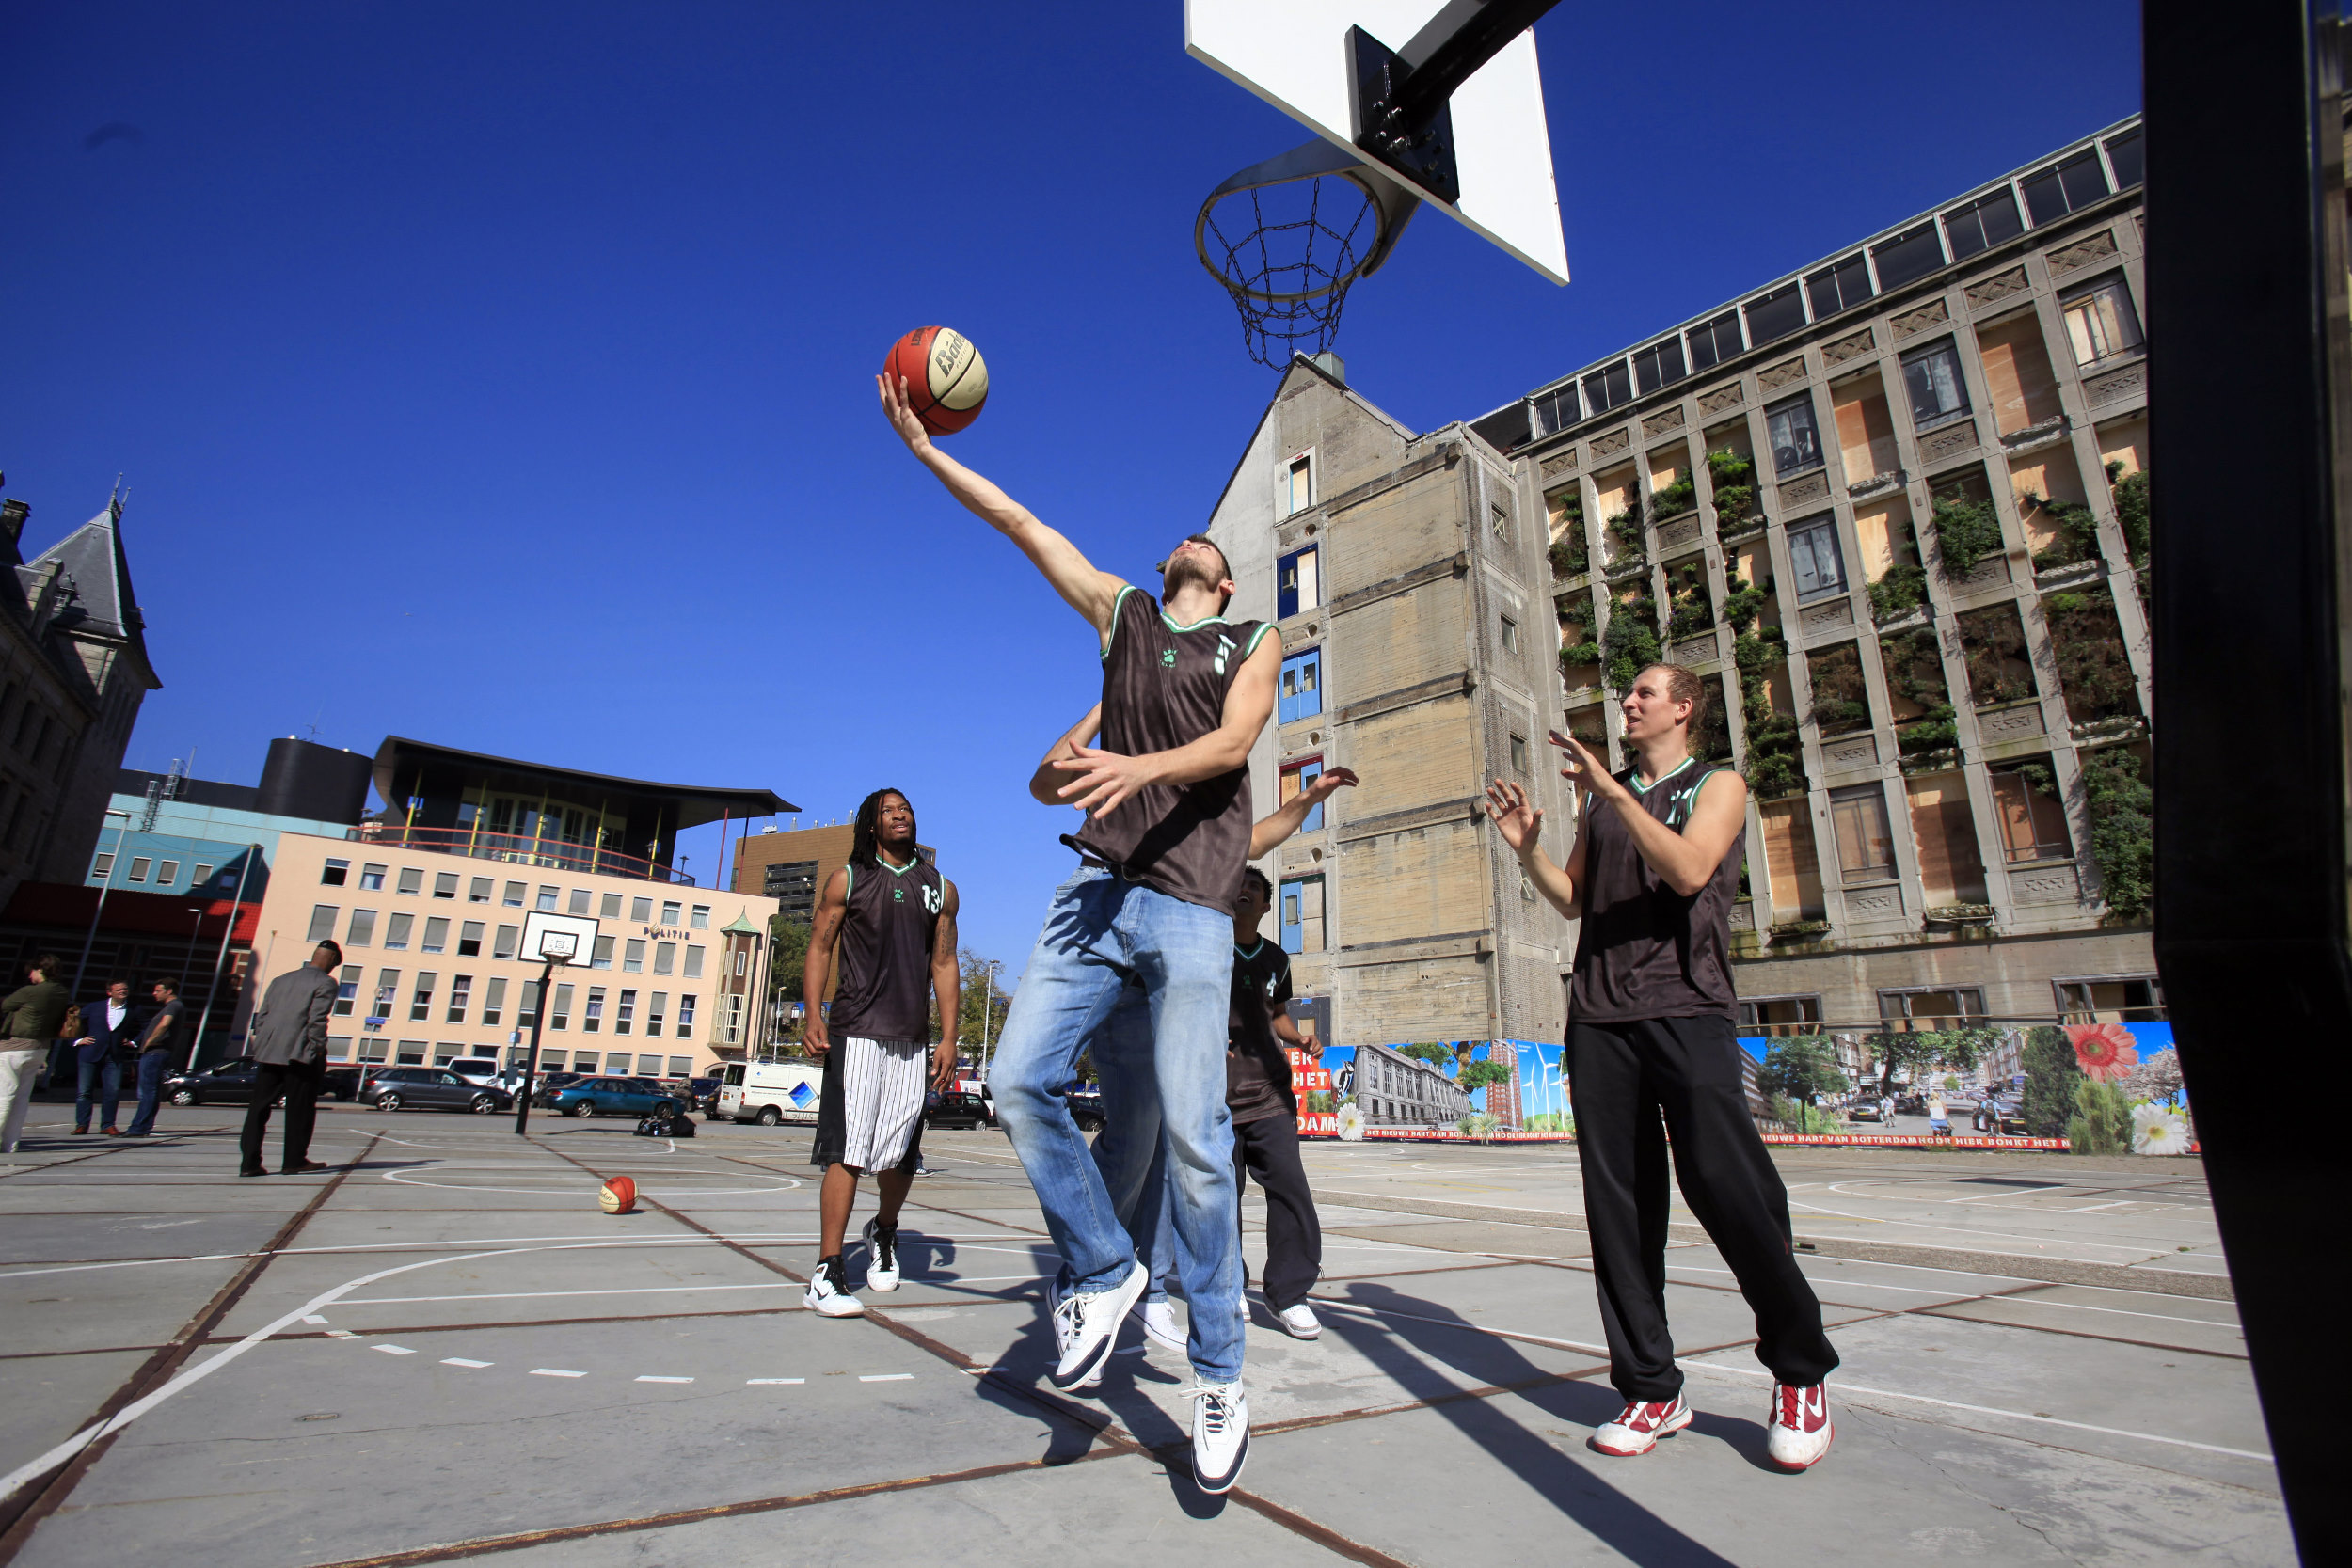 Sport Basketbal Rotterdam Rodezand basketbalveld court teamsport net driepunter